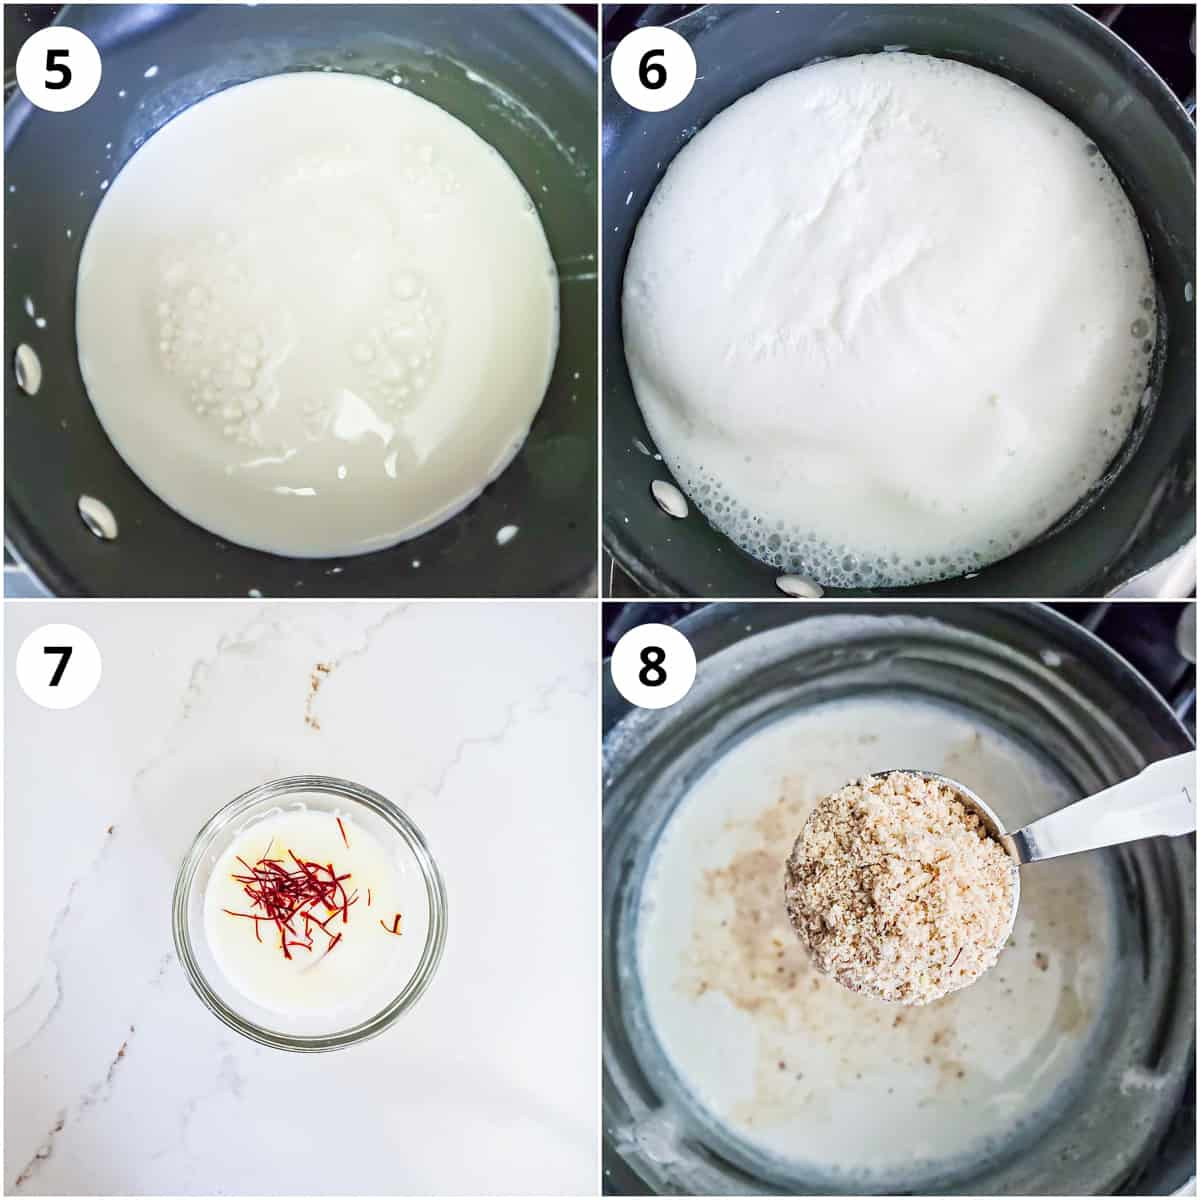 Steps showing boiling milk, soaking saffron and adding powdered nuts to milk